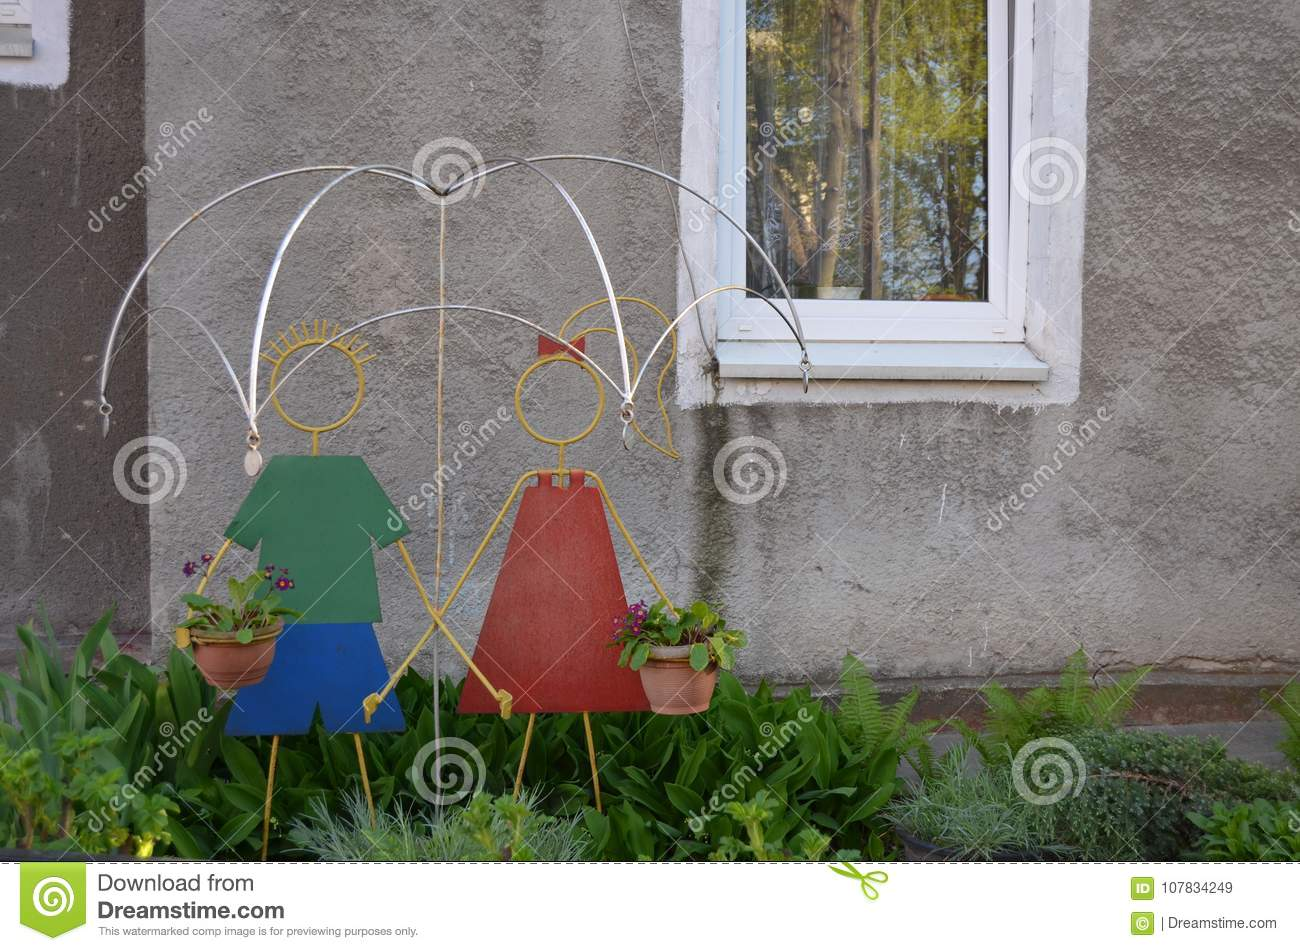 Iron Colored Figures Of A Boy And Girls With An Umbrella Stand In